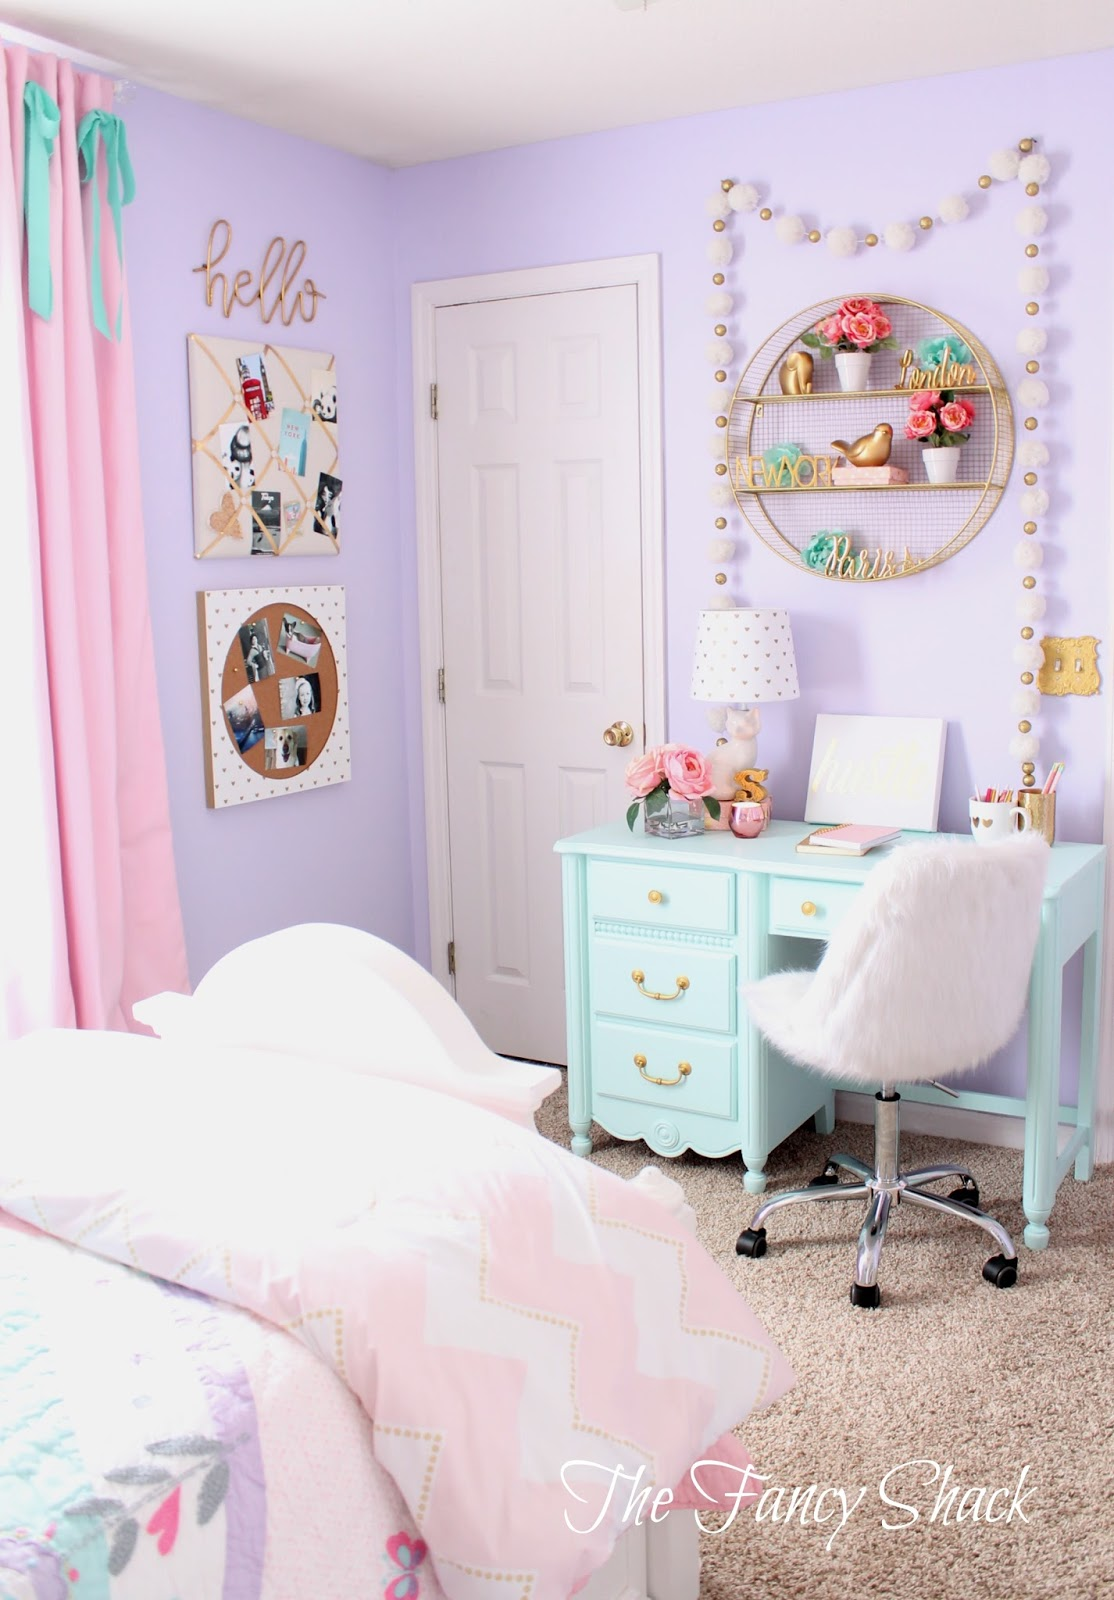 The Fancy Shack: Pastel Girls Room Makeover on Room Decor Aesthetic id=98268